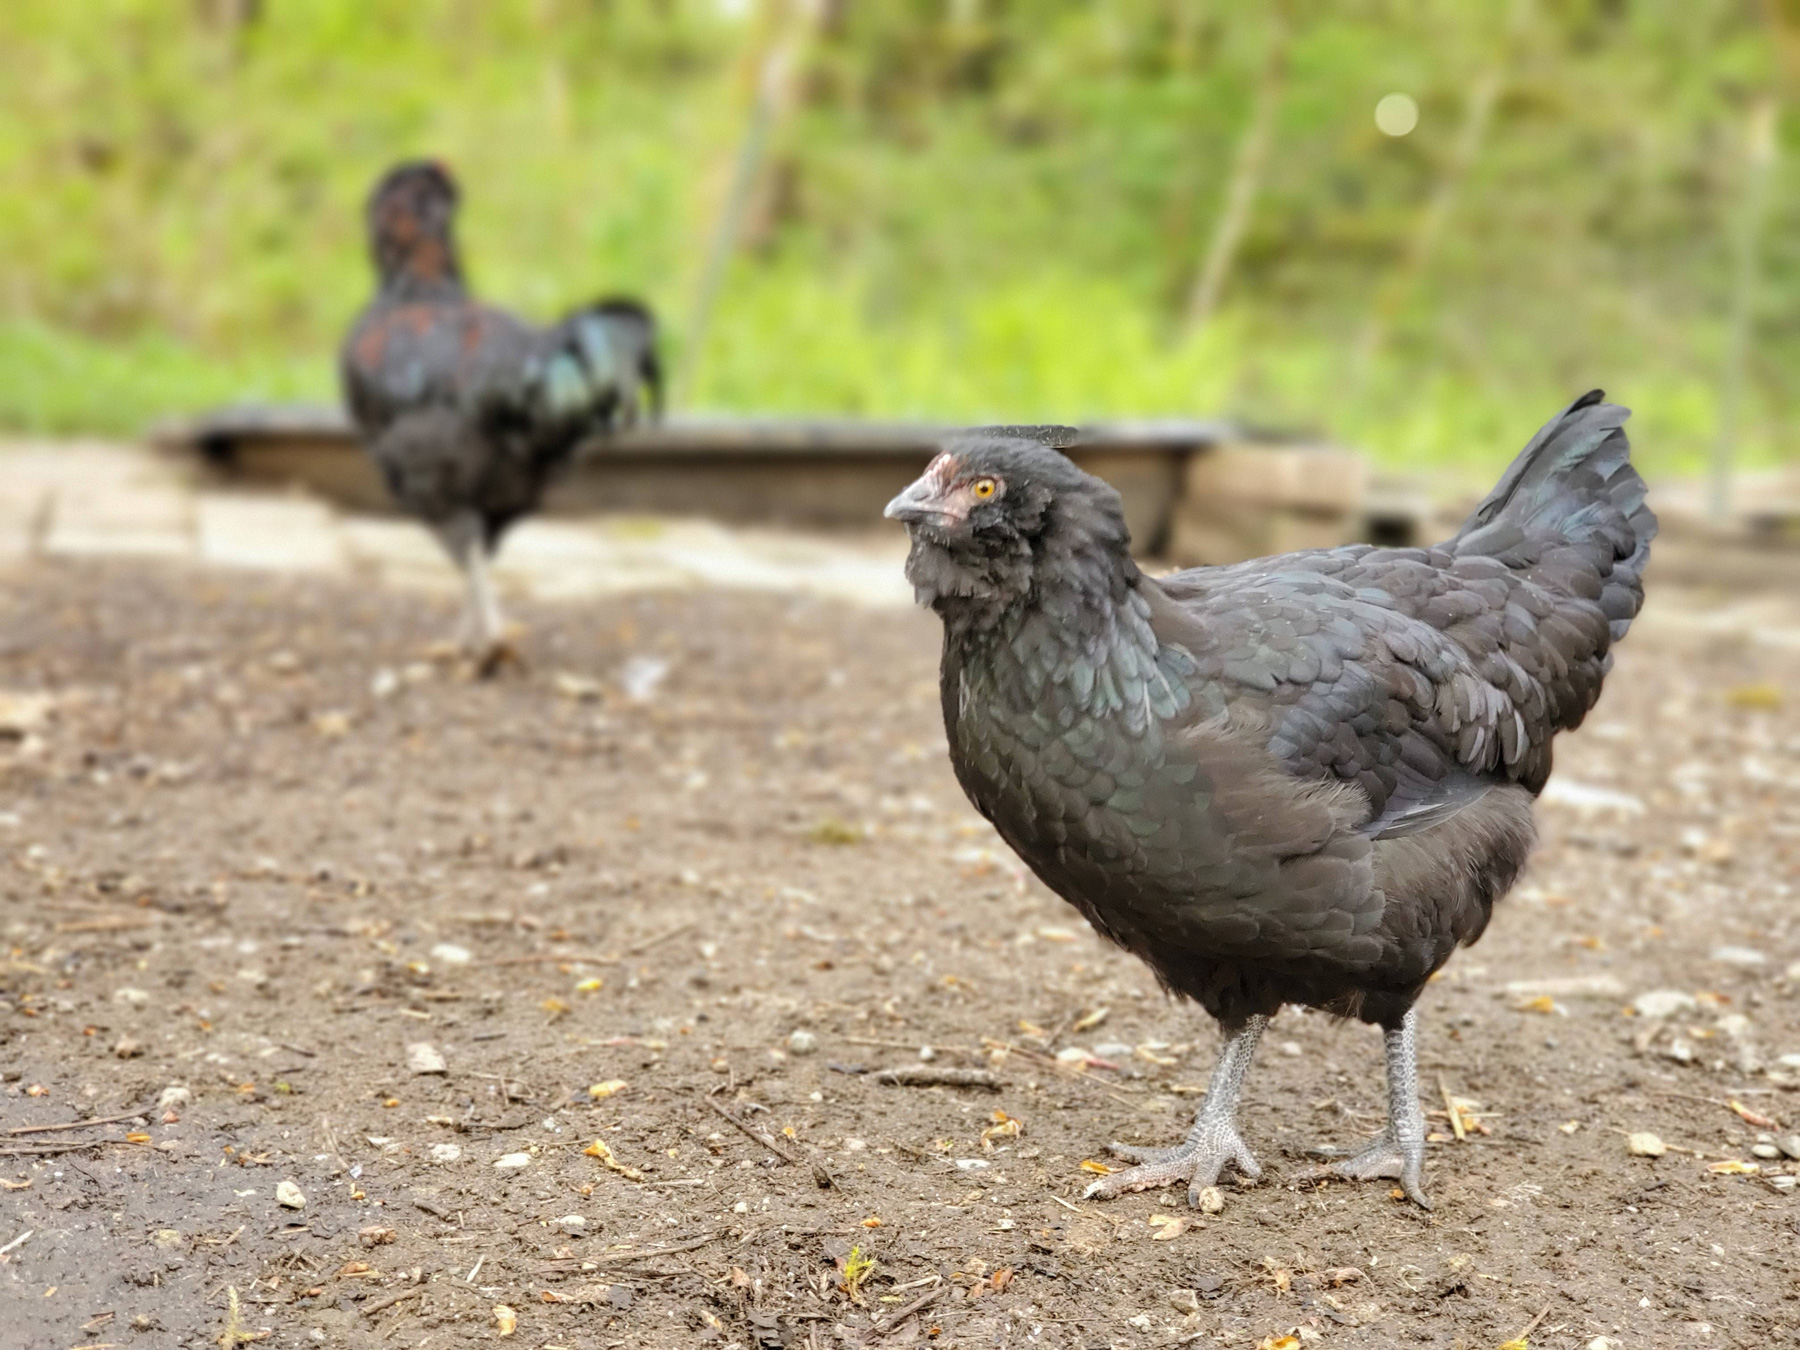 McMurray Hatchery | Homesteading | Raising Free Range Poultry